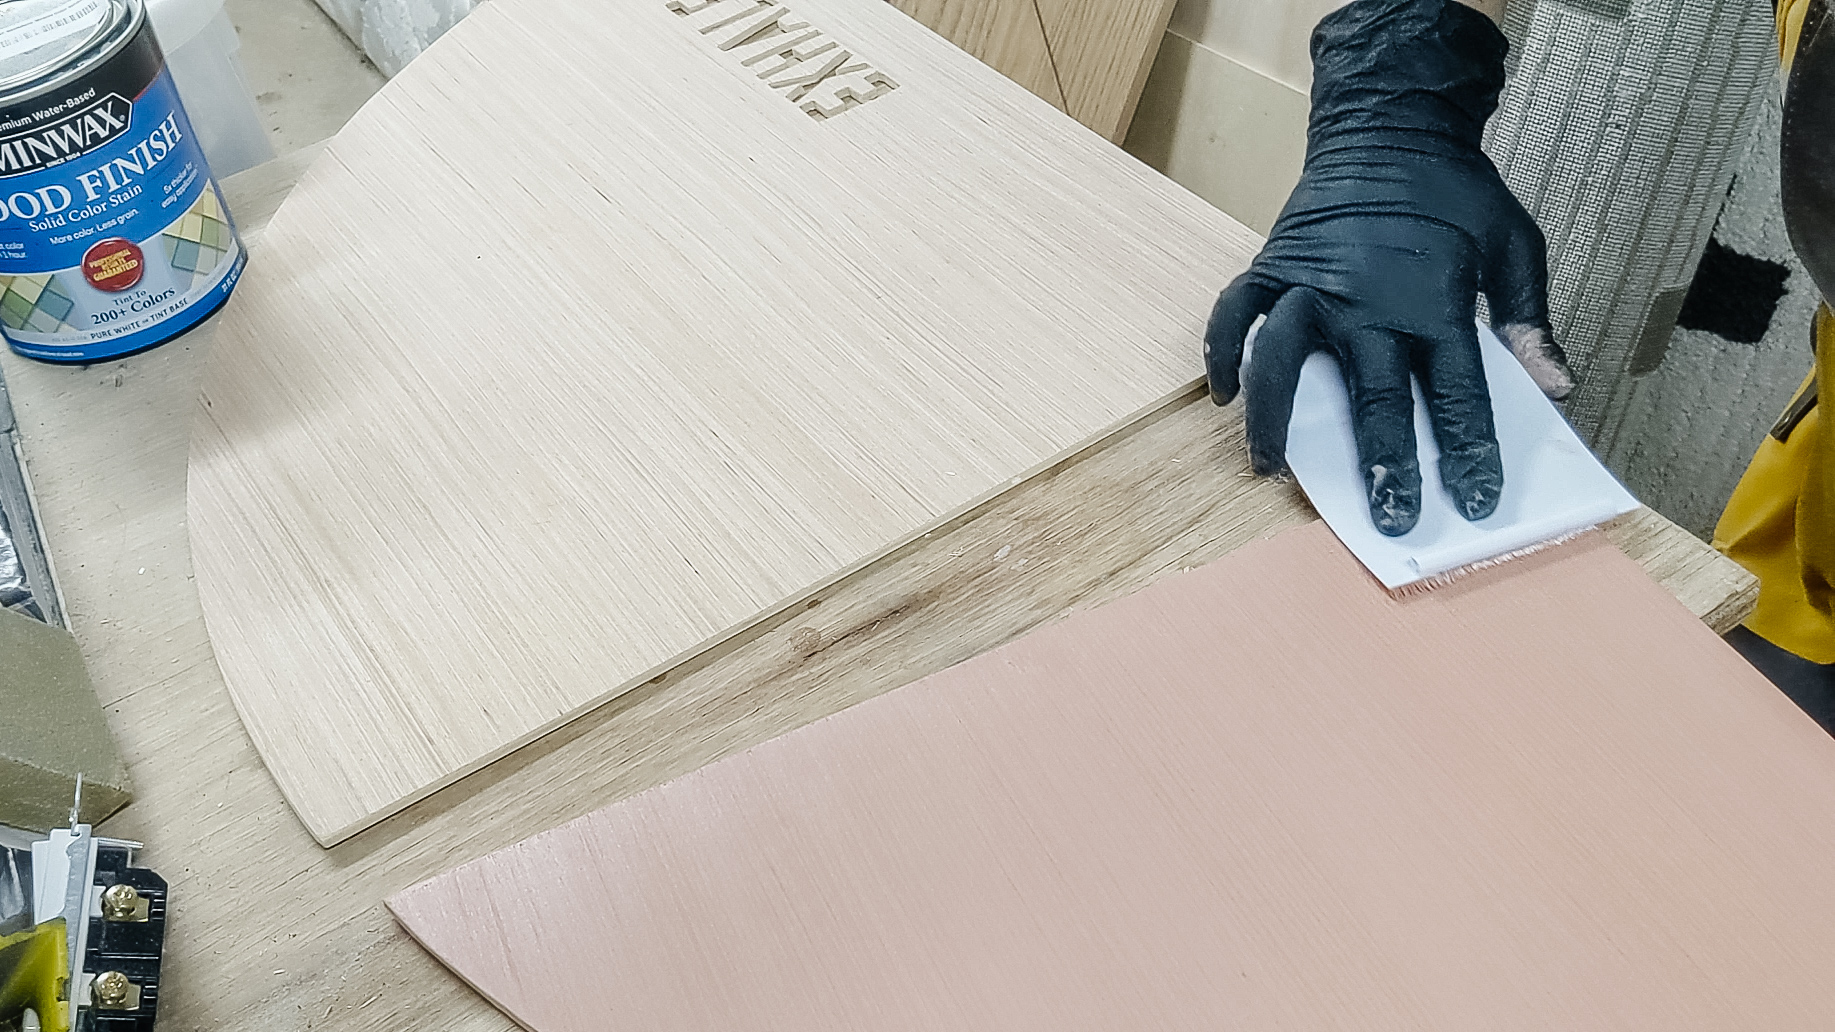 apply soild color stain to the surface and wipe off in minutes